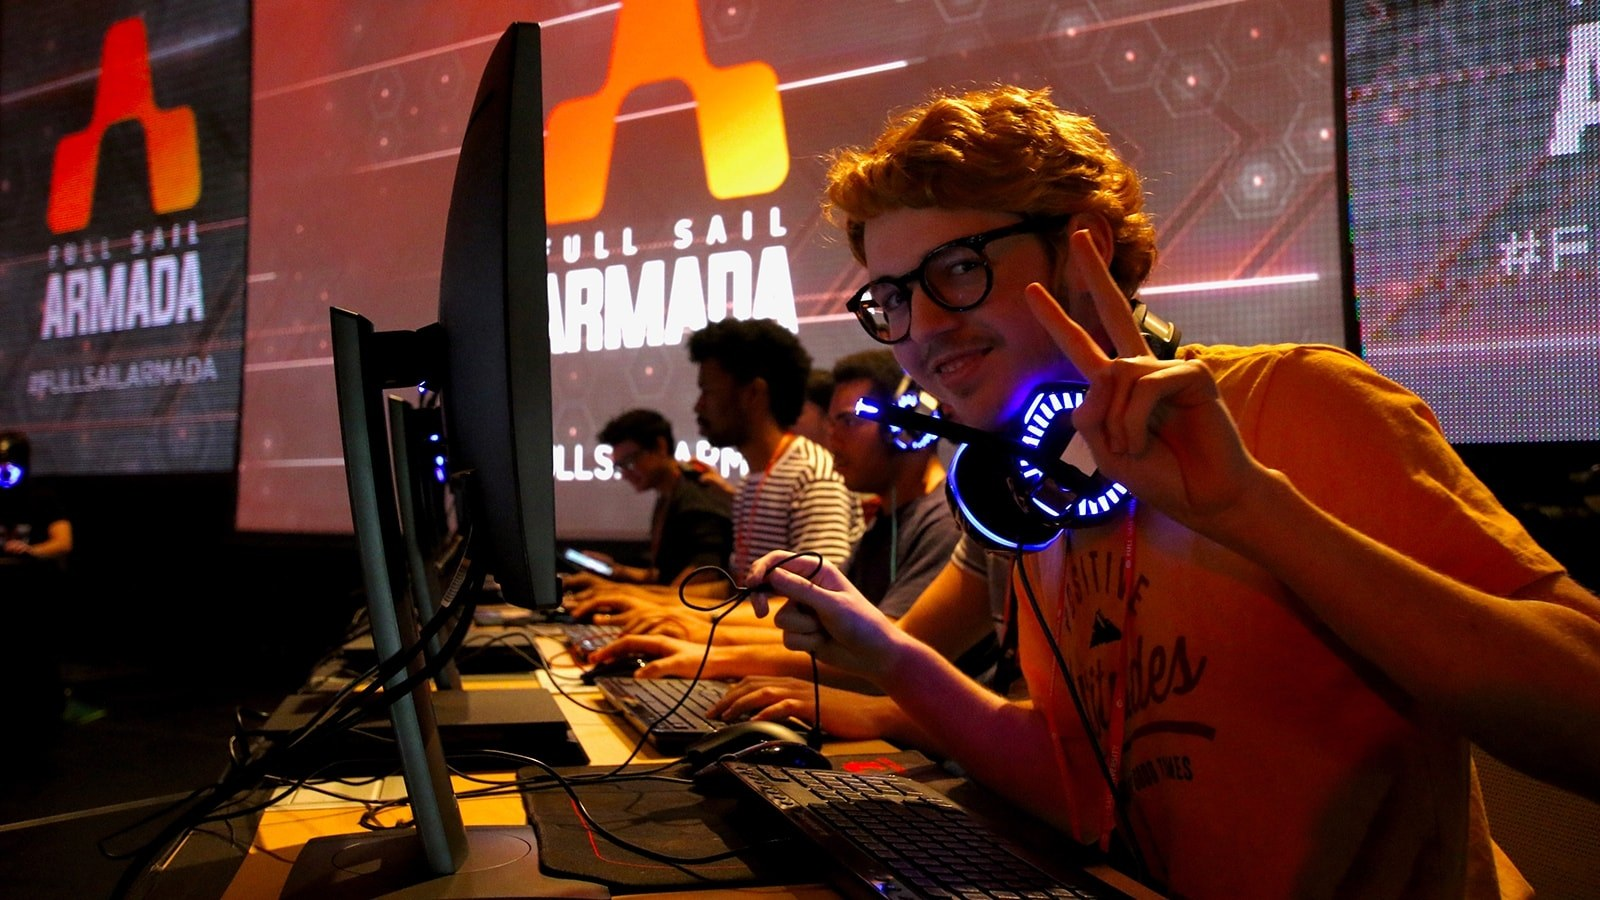 Full Sail Ranked Among Top Game Design Schools Full Sail University - Game design schools